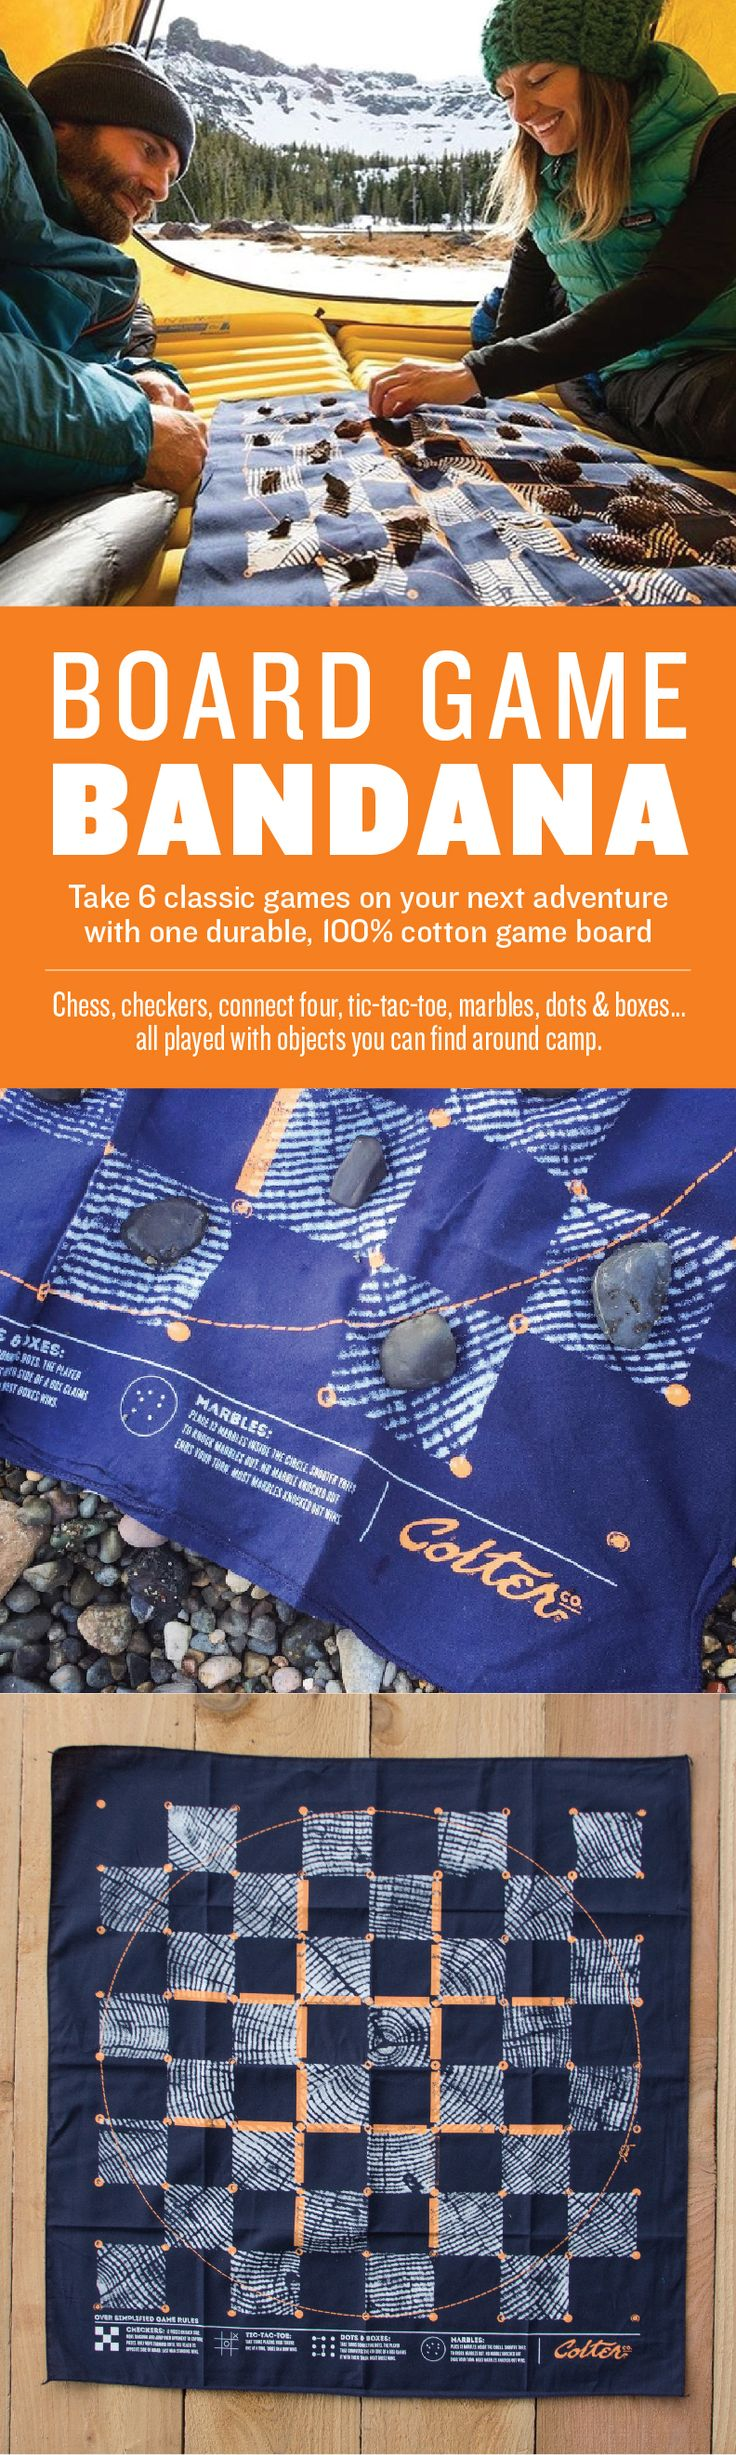 Colter Co. Cabin Fever Bandana. Take 6 classic games with you on your next adventure in the form of a durable, 100% cotton bandana. Chess, checkers, tic-tac-toe, marbles, dots & boxes... all played with objects you can find around camp. Perfect for scouts, day packs and survival kits.  http://www.coltercousa.com/shop/cabinfever